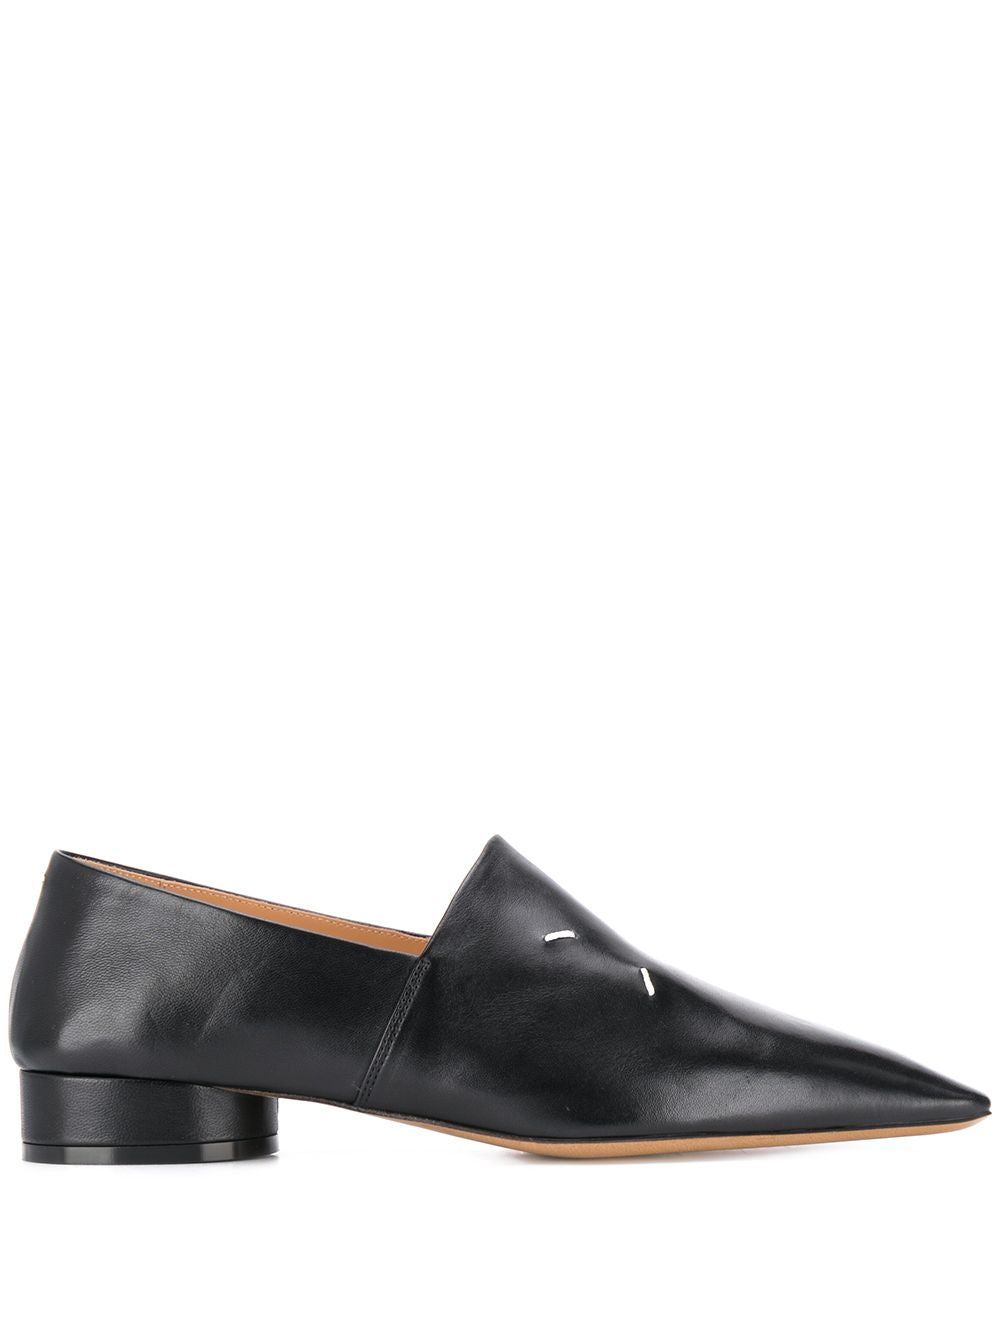 MAISON MARGIELA WOMEN STITCH LOGO POINTY TOE FLATS